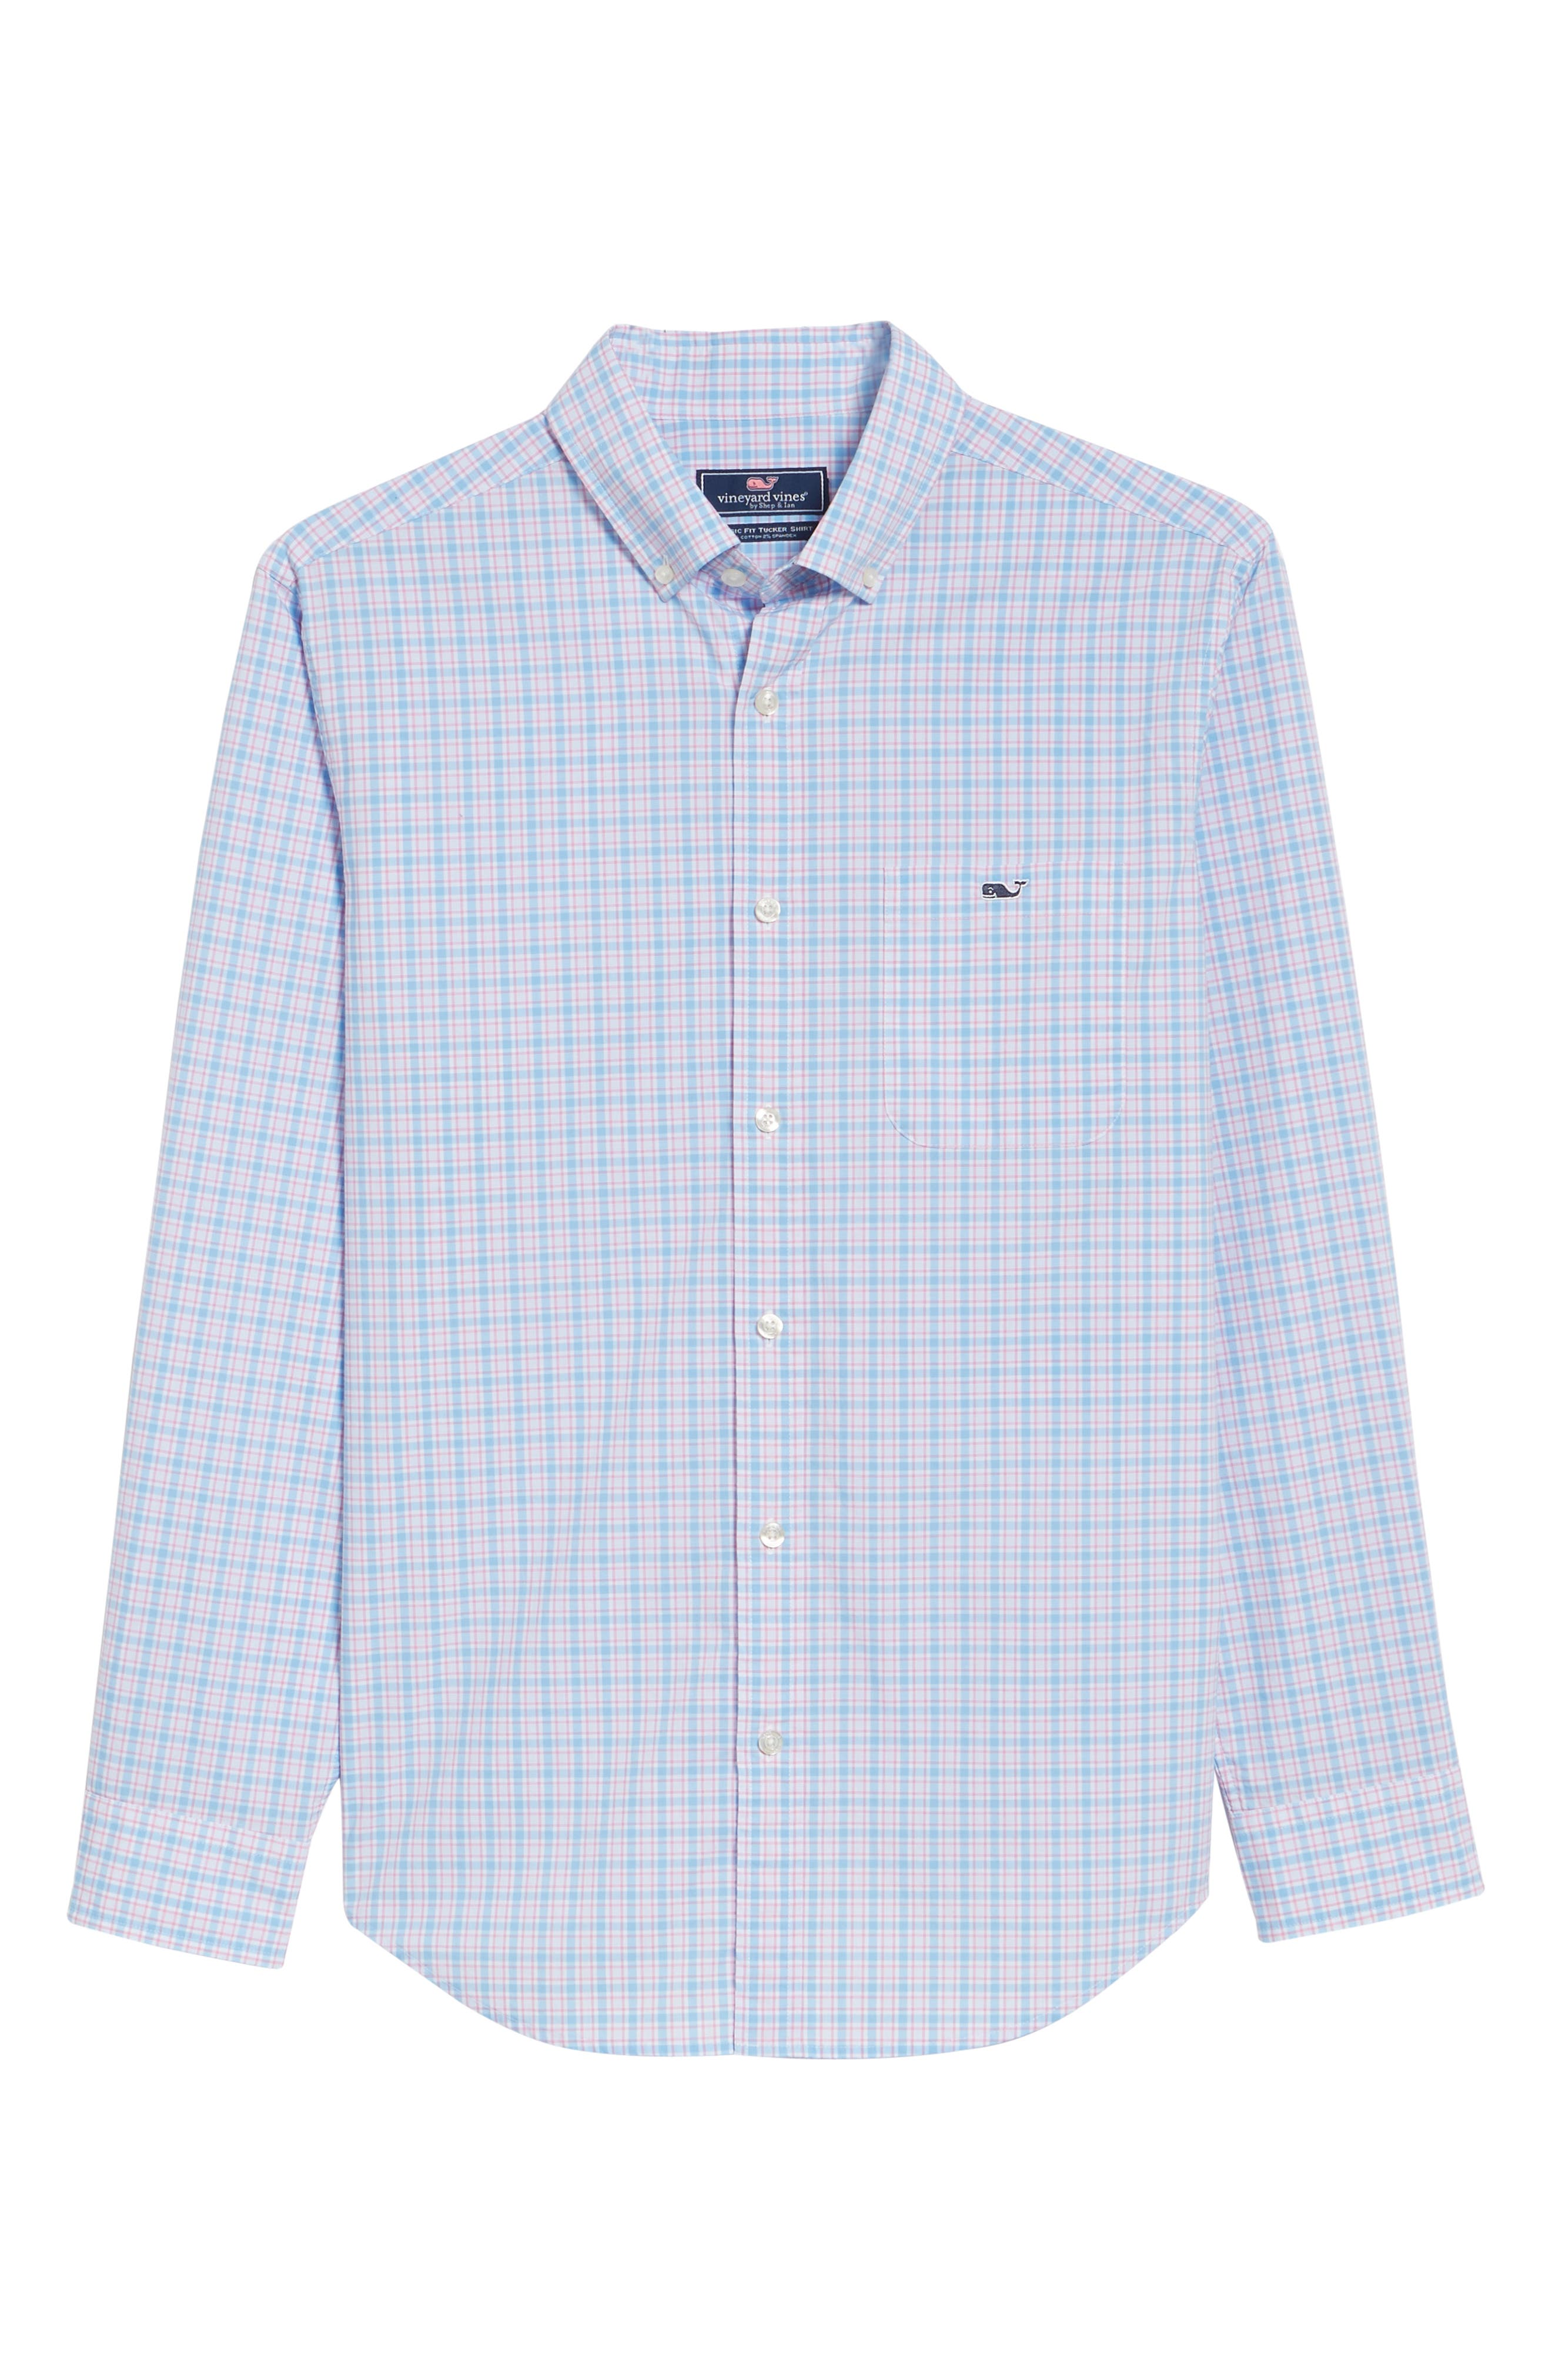 Captain Lyford Classic Fit Stretch Check Sport Shirt,                             Alternate thumbnail 6, color,                             484